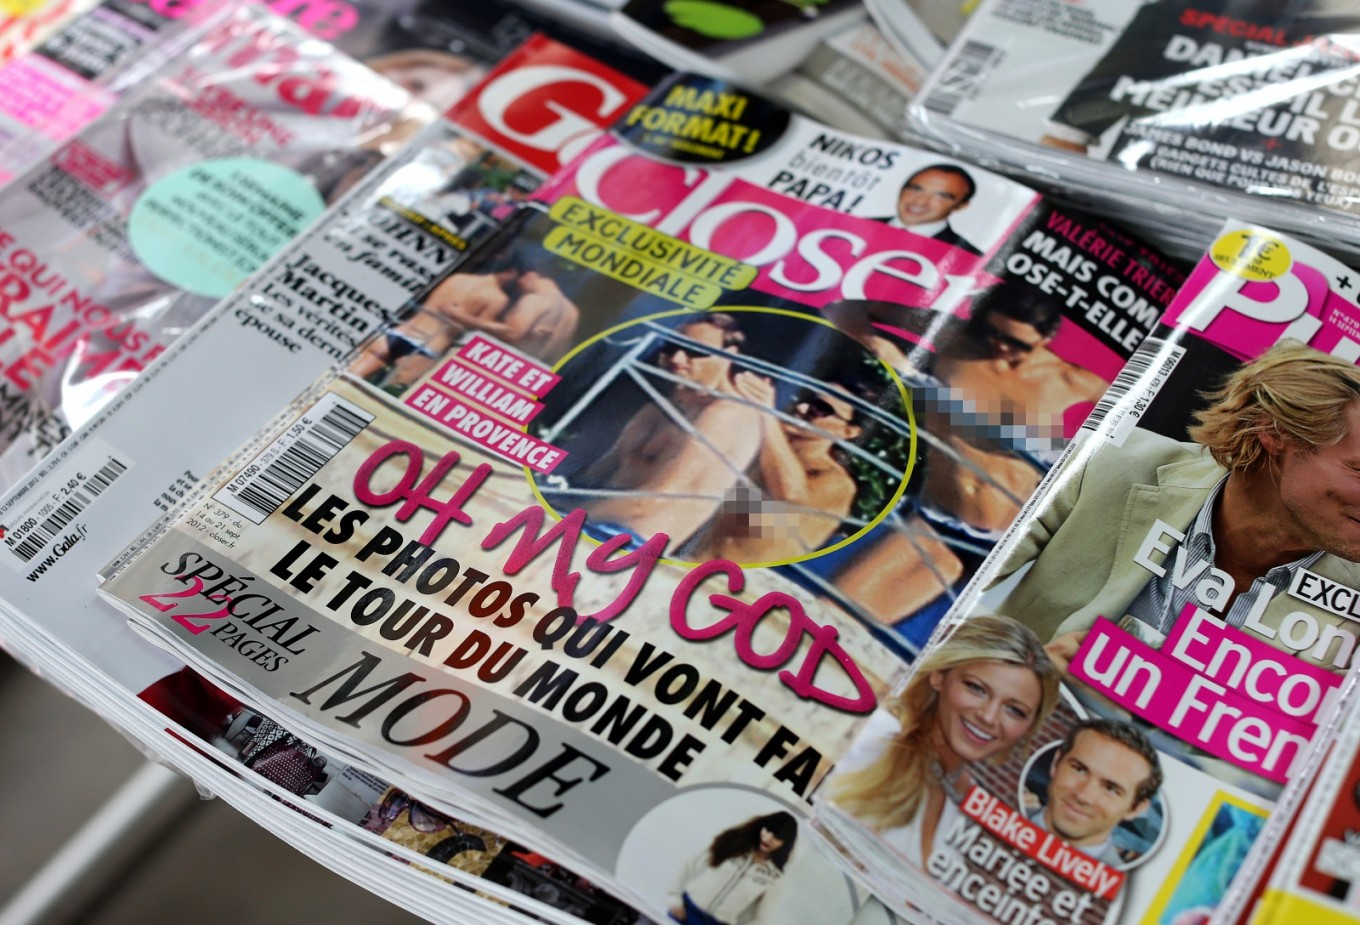 French court to rule on Kate topless snaps - Lifestyle - The